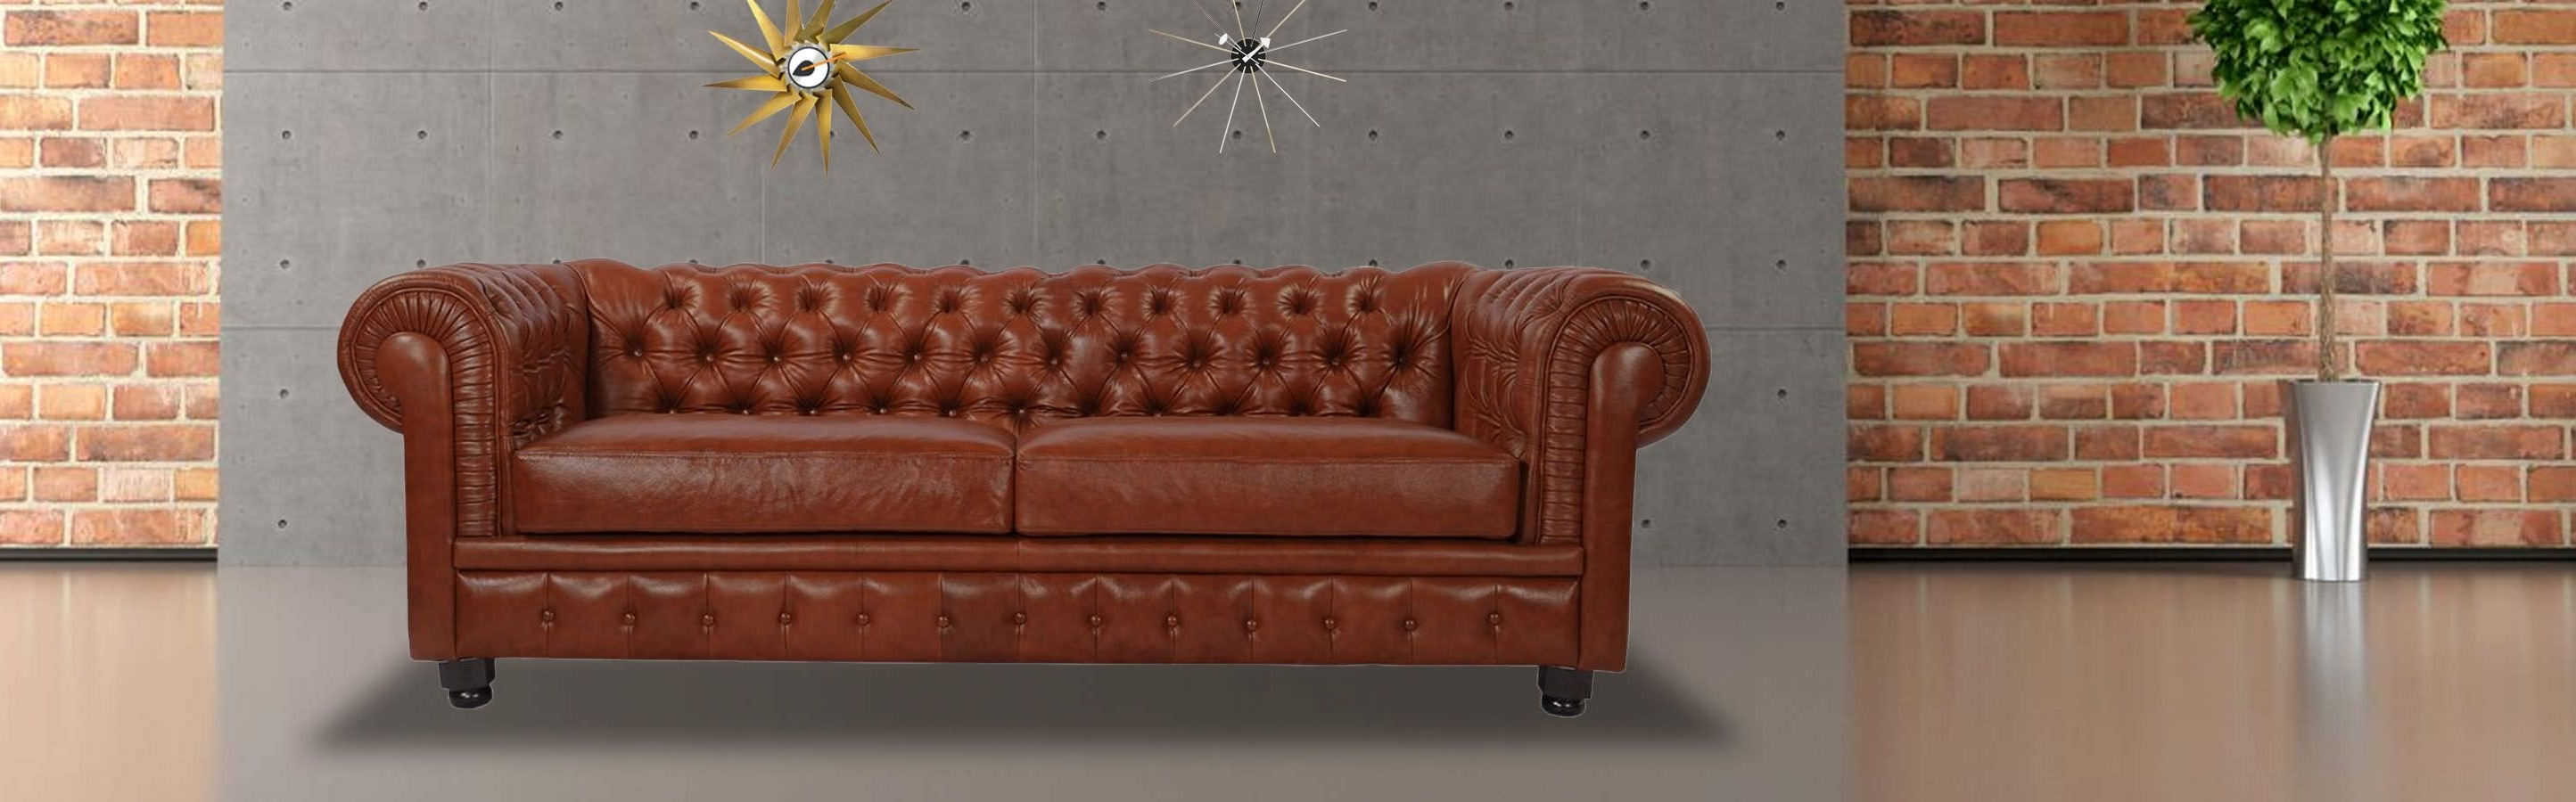 Popular Chesterfield Sofas And Chairs Intended For Chesterfield Sofa, Chevron Grey Twill – Kardiel (View 12 of 15)